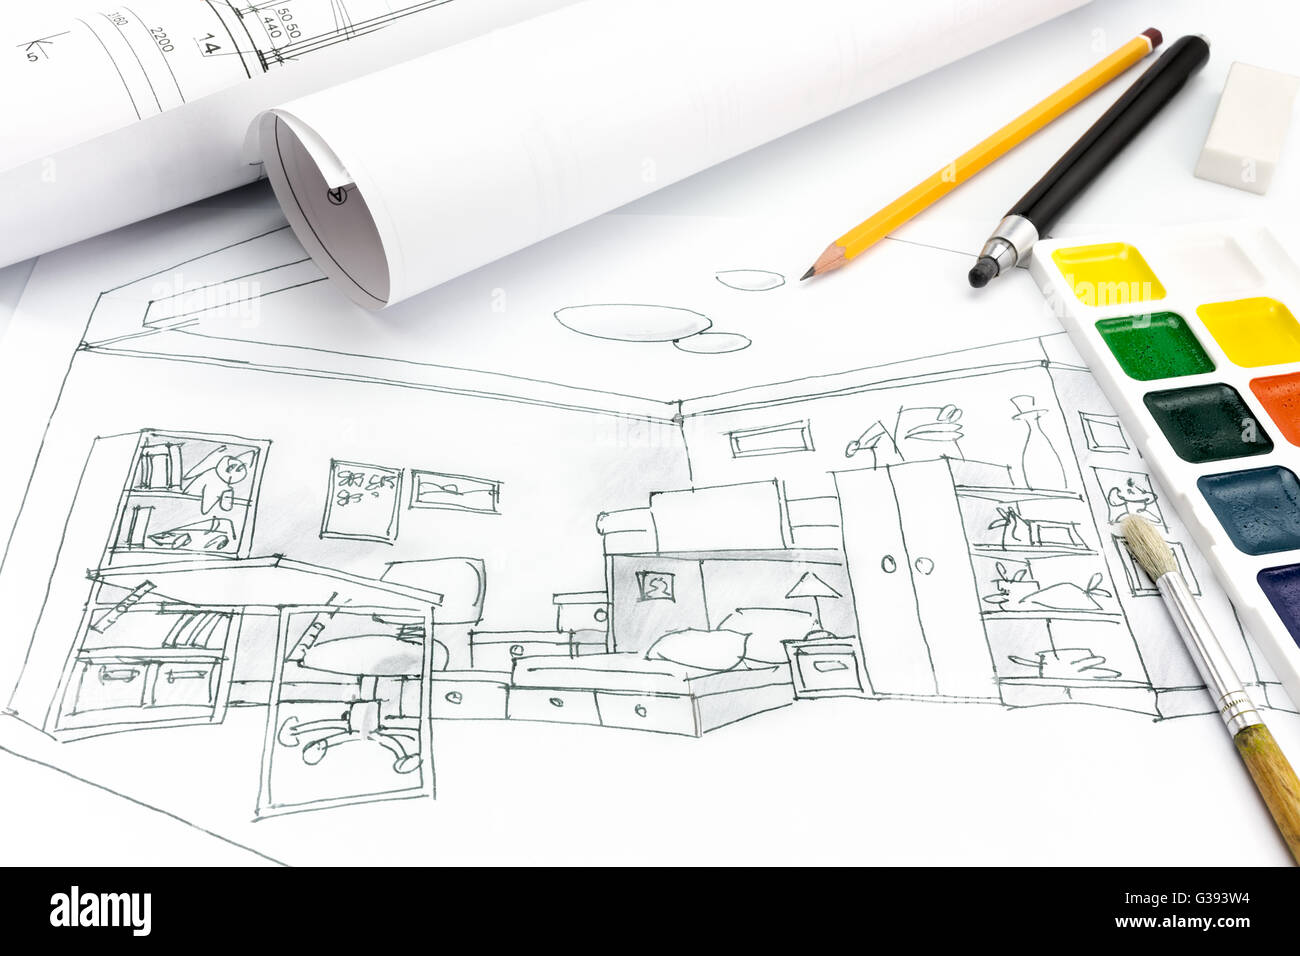 Living Room Plan And Drawing Tools On A Designers Desk